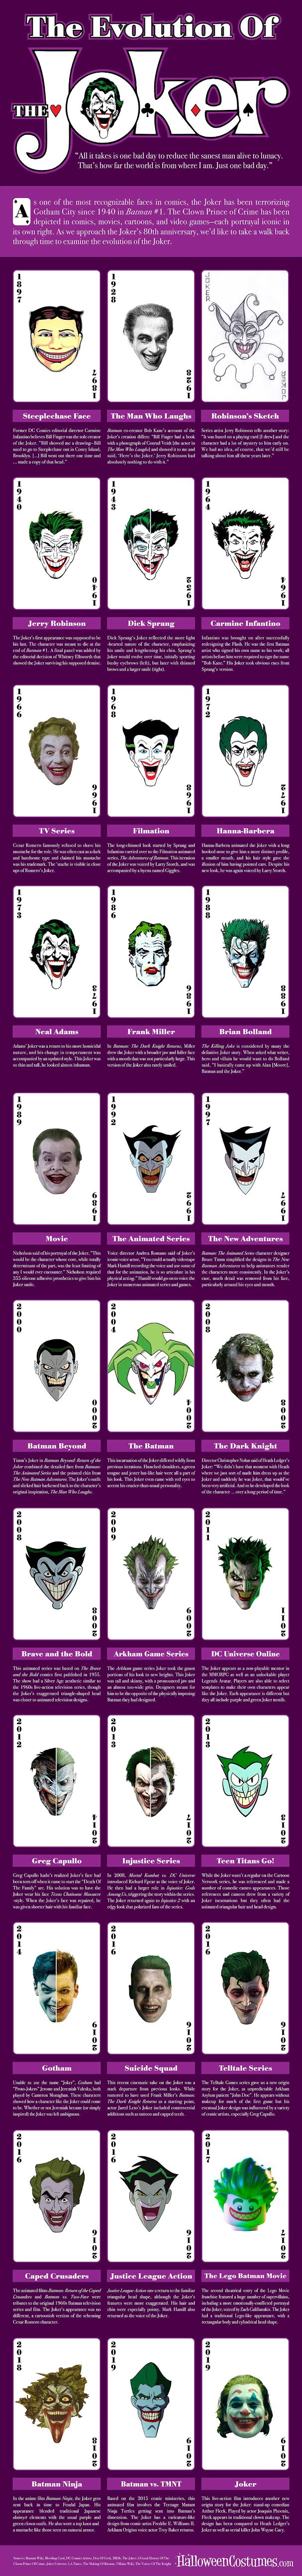 The Evolution of the Joker #infographic